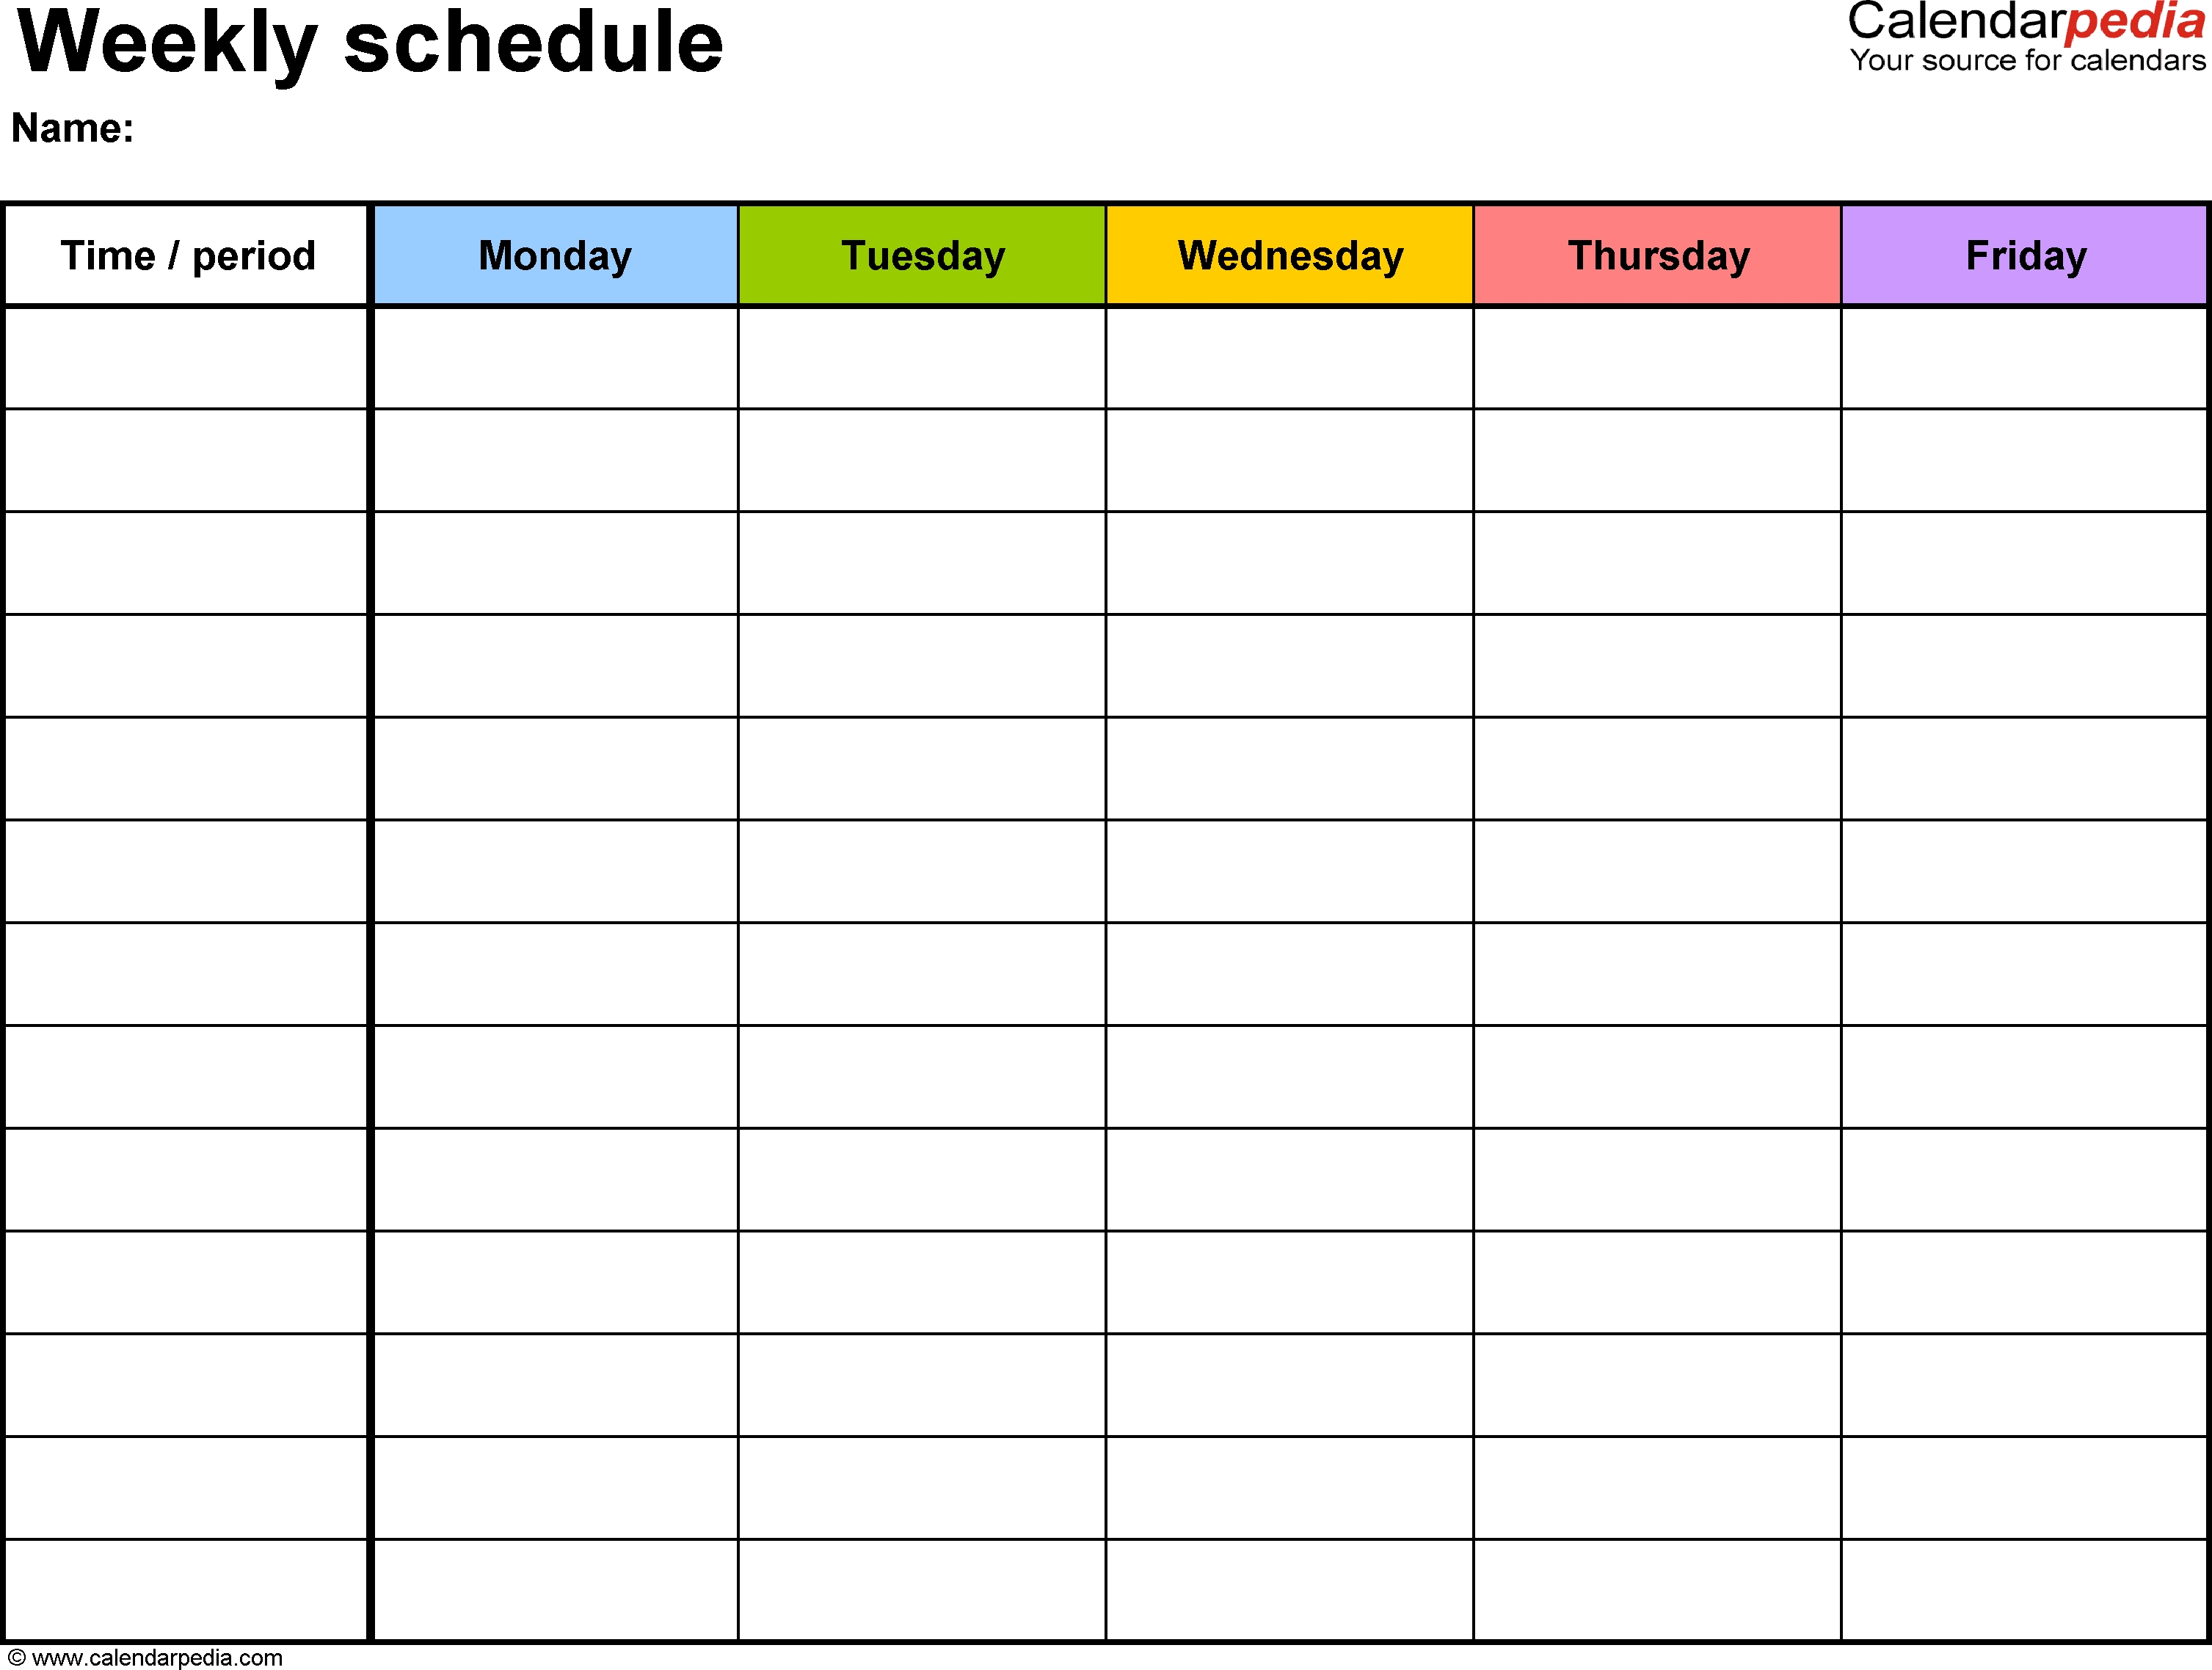 Free Weekly Schedule Templates For Pdf - 18 Templates  7 Day Weekly Planner Pdf